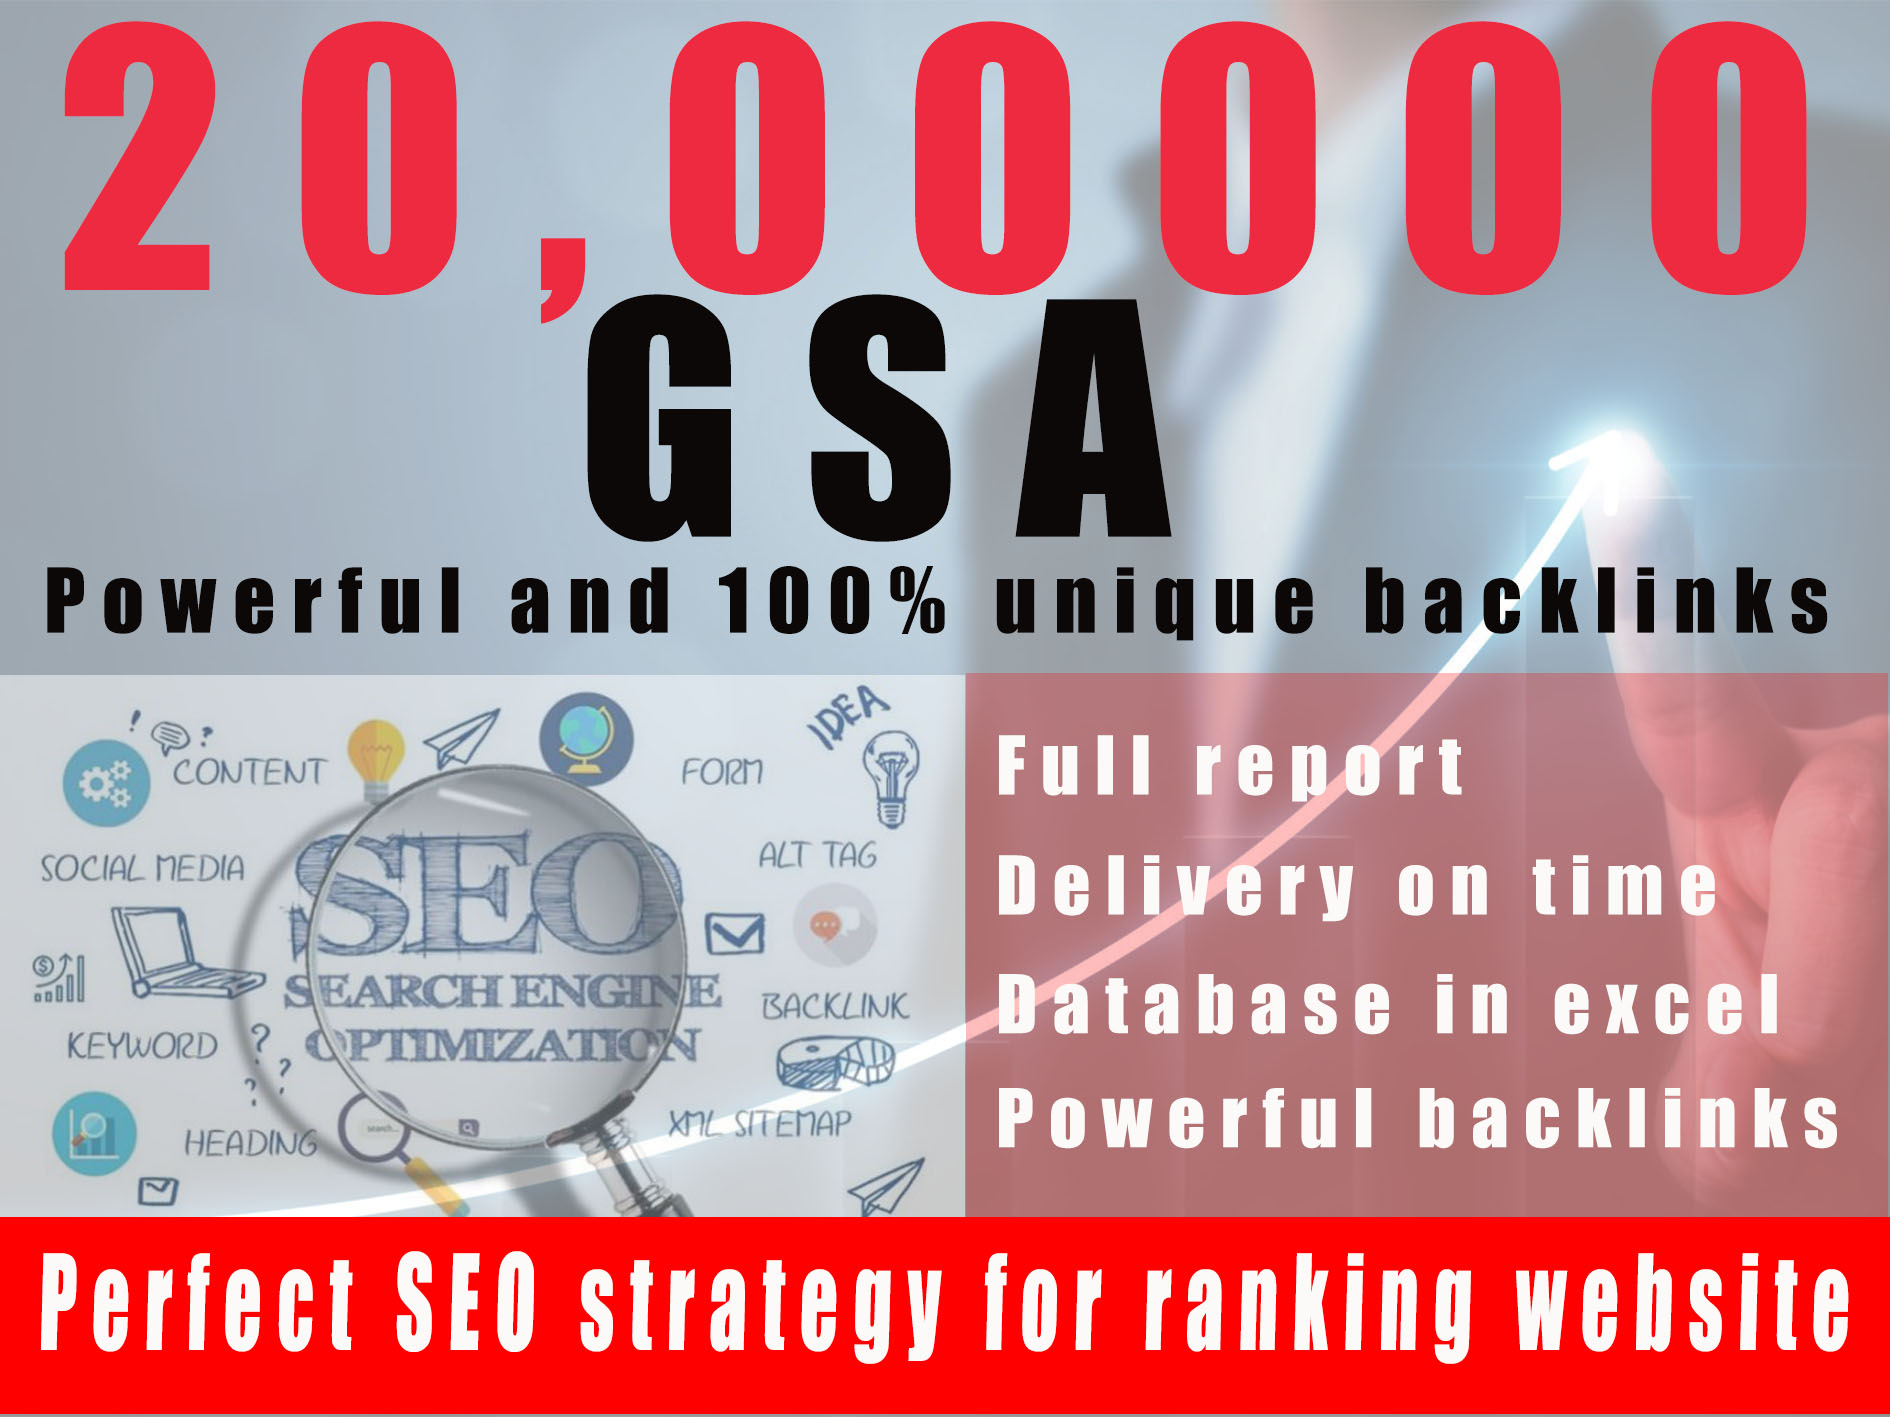 Build 2 million tier 2 or tier 3 backlinks for top ranking